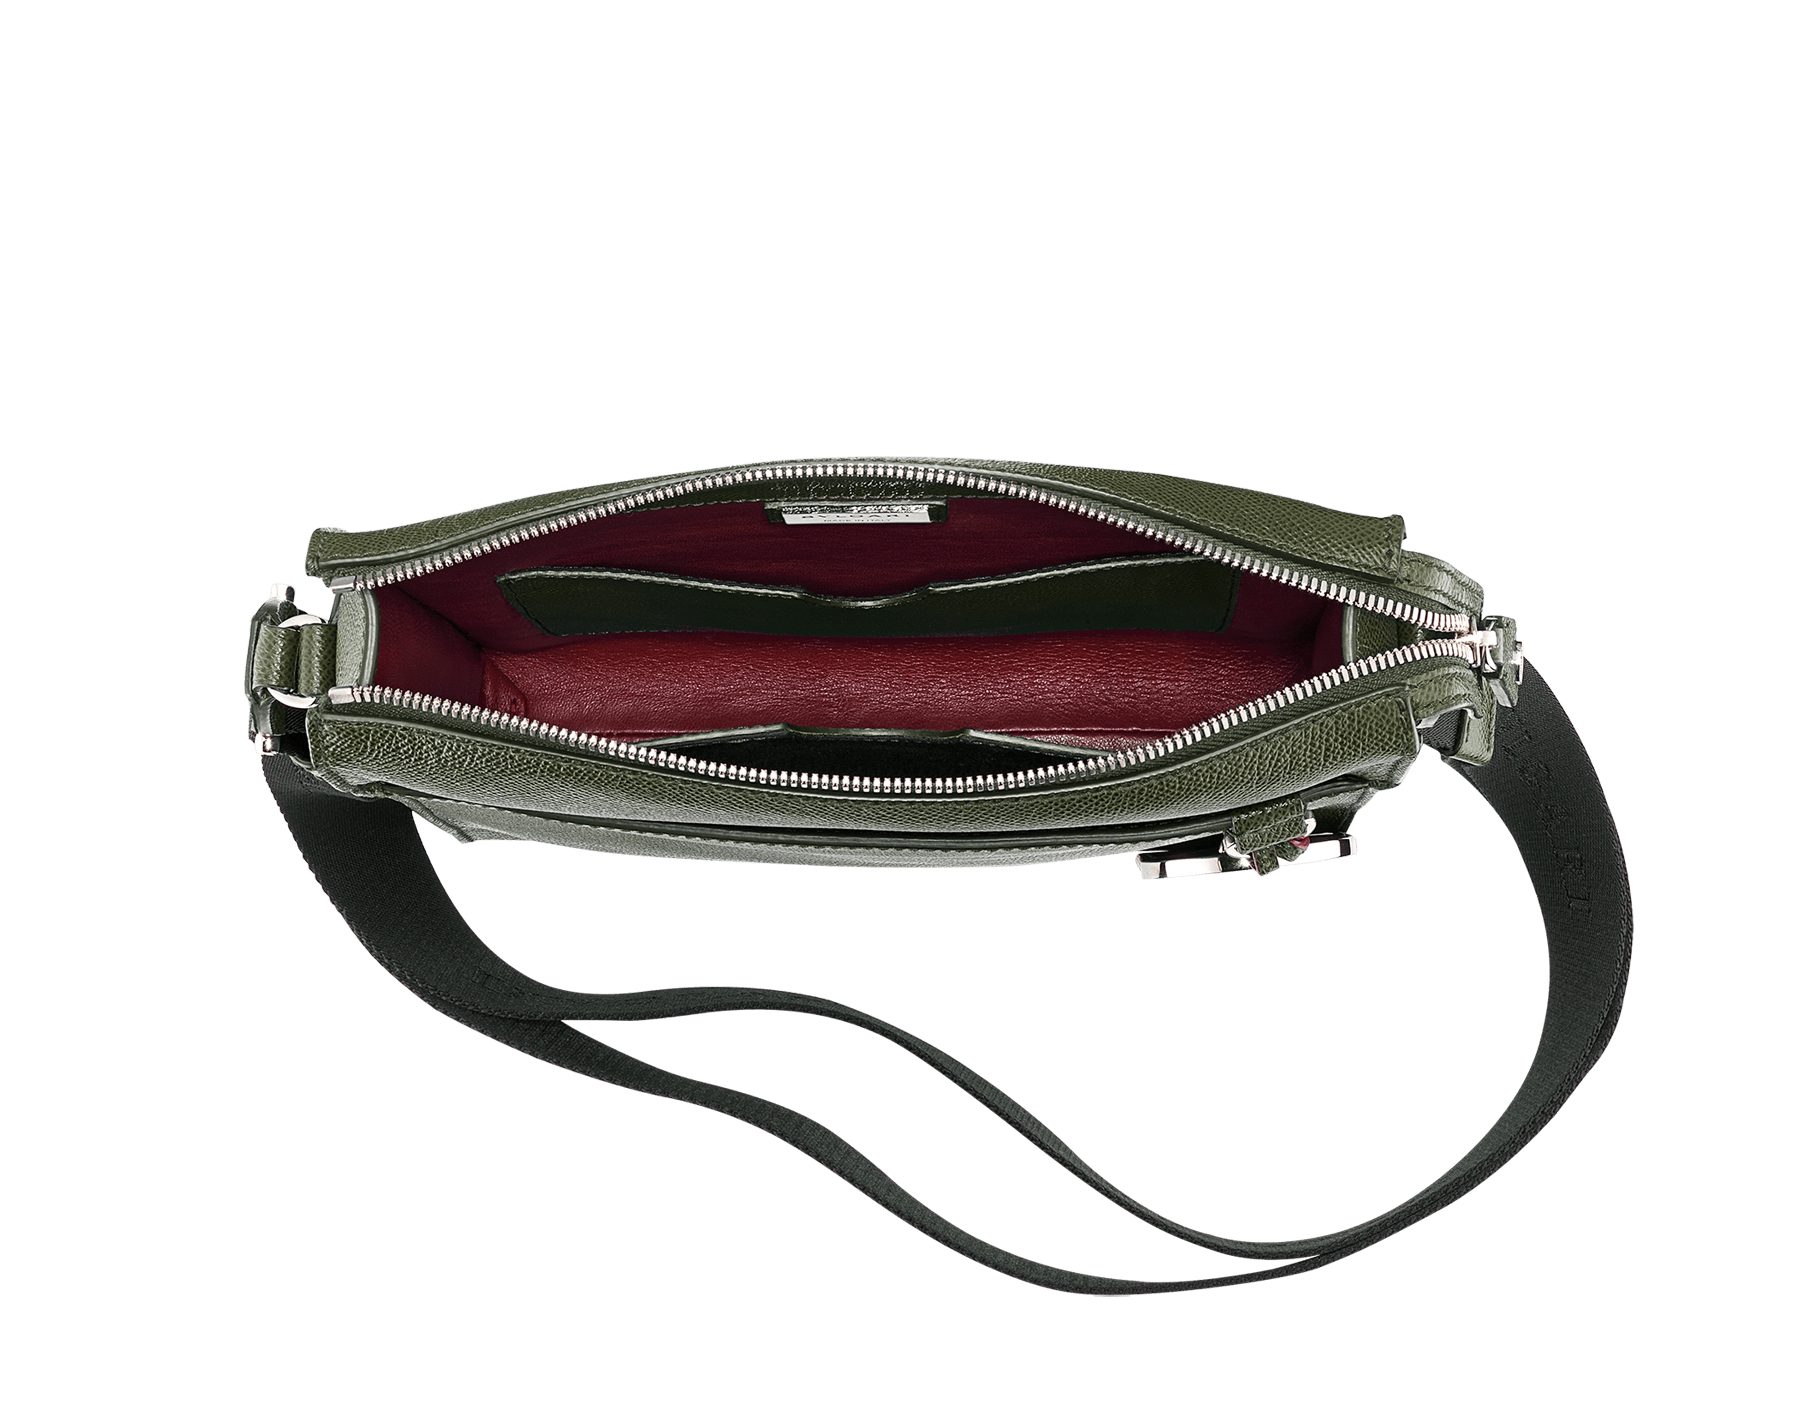 """BVLGARI BVLGARI"" zip-top messenger bag in mimetic jade grain calf leather with brass palladium plated hardware. BBM-001-0624S image 2"